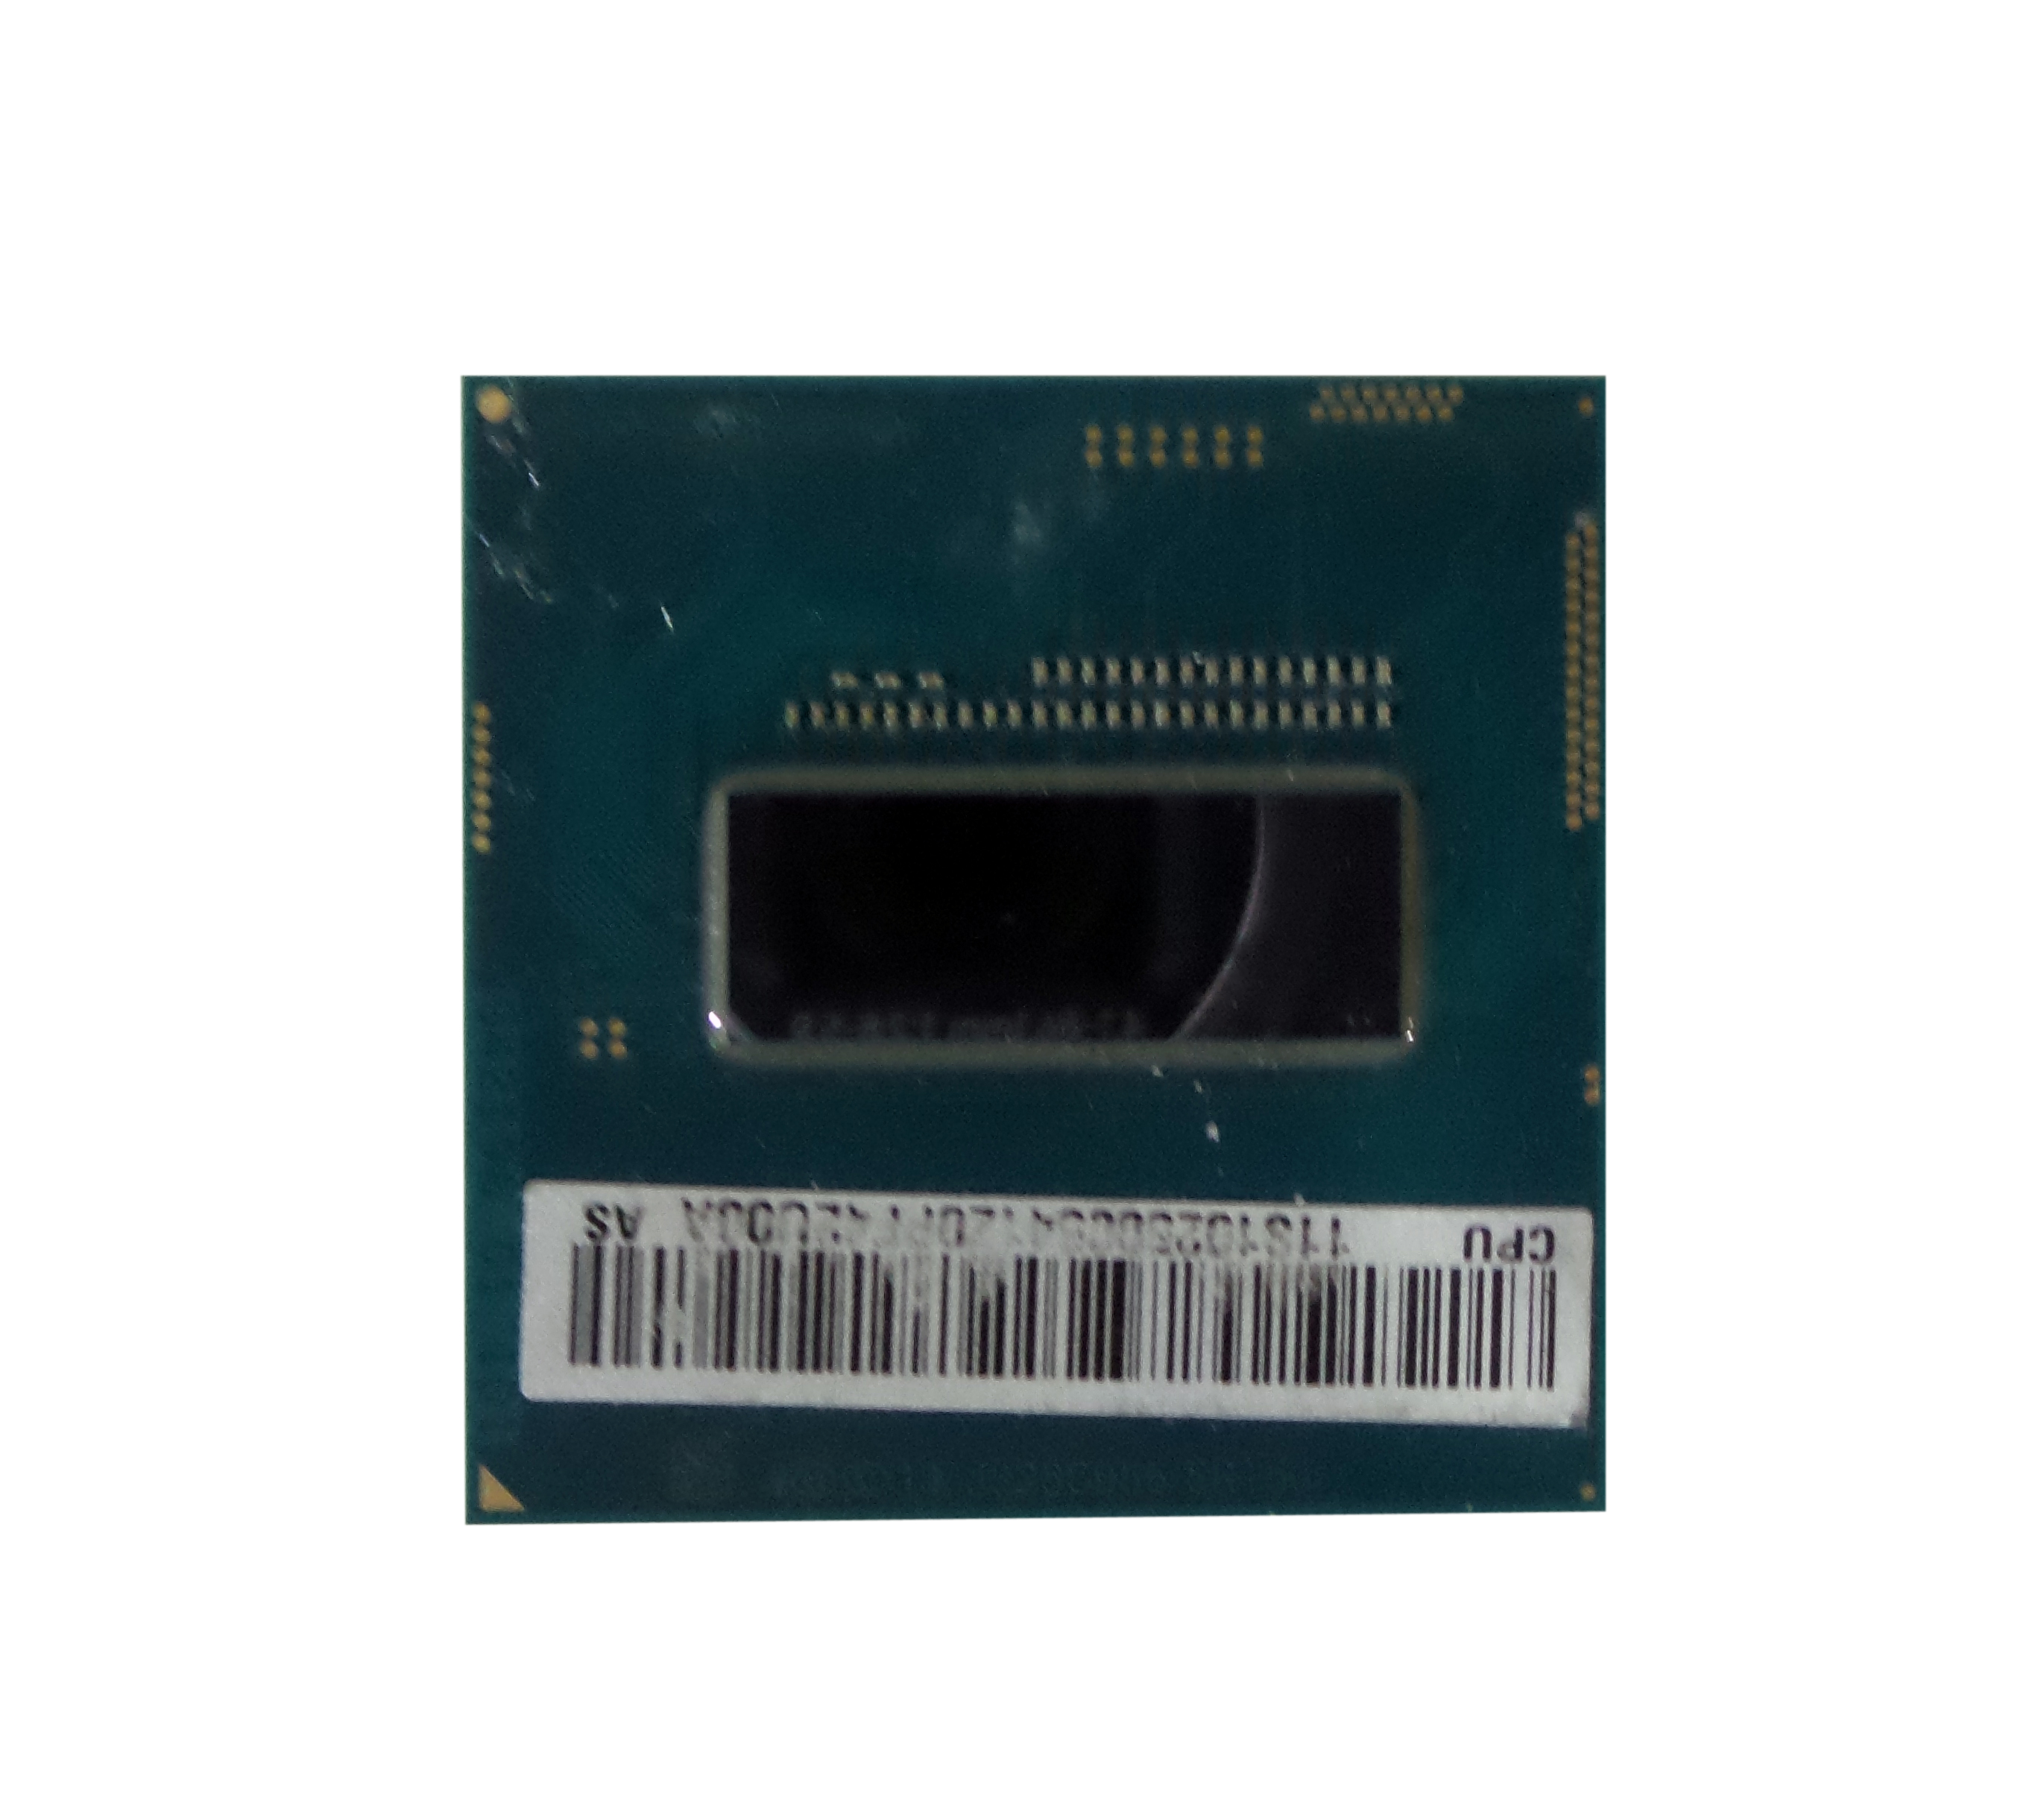 Intel core i7-4702mq processor  sr15j (6m cache, up to 3.20 ghz)